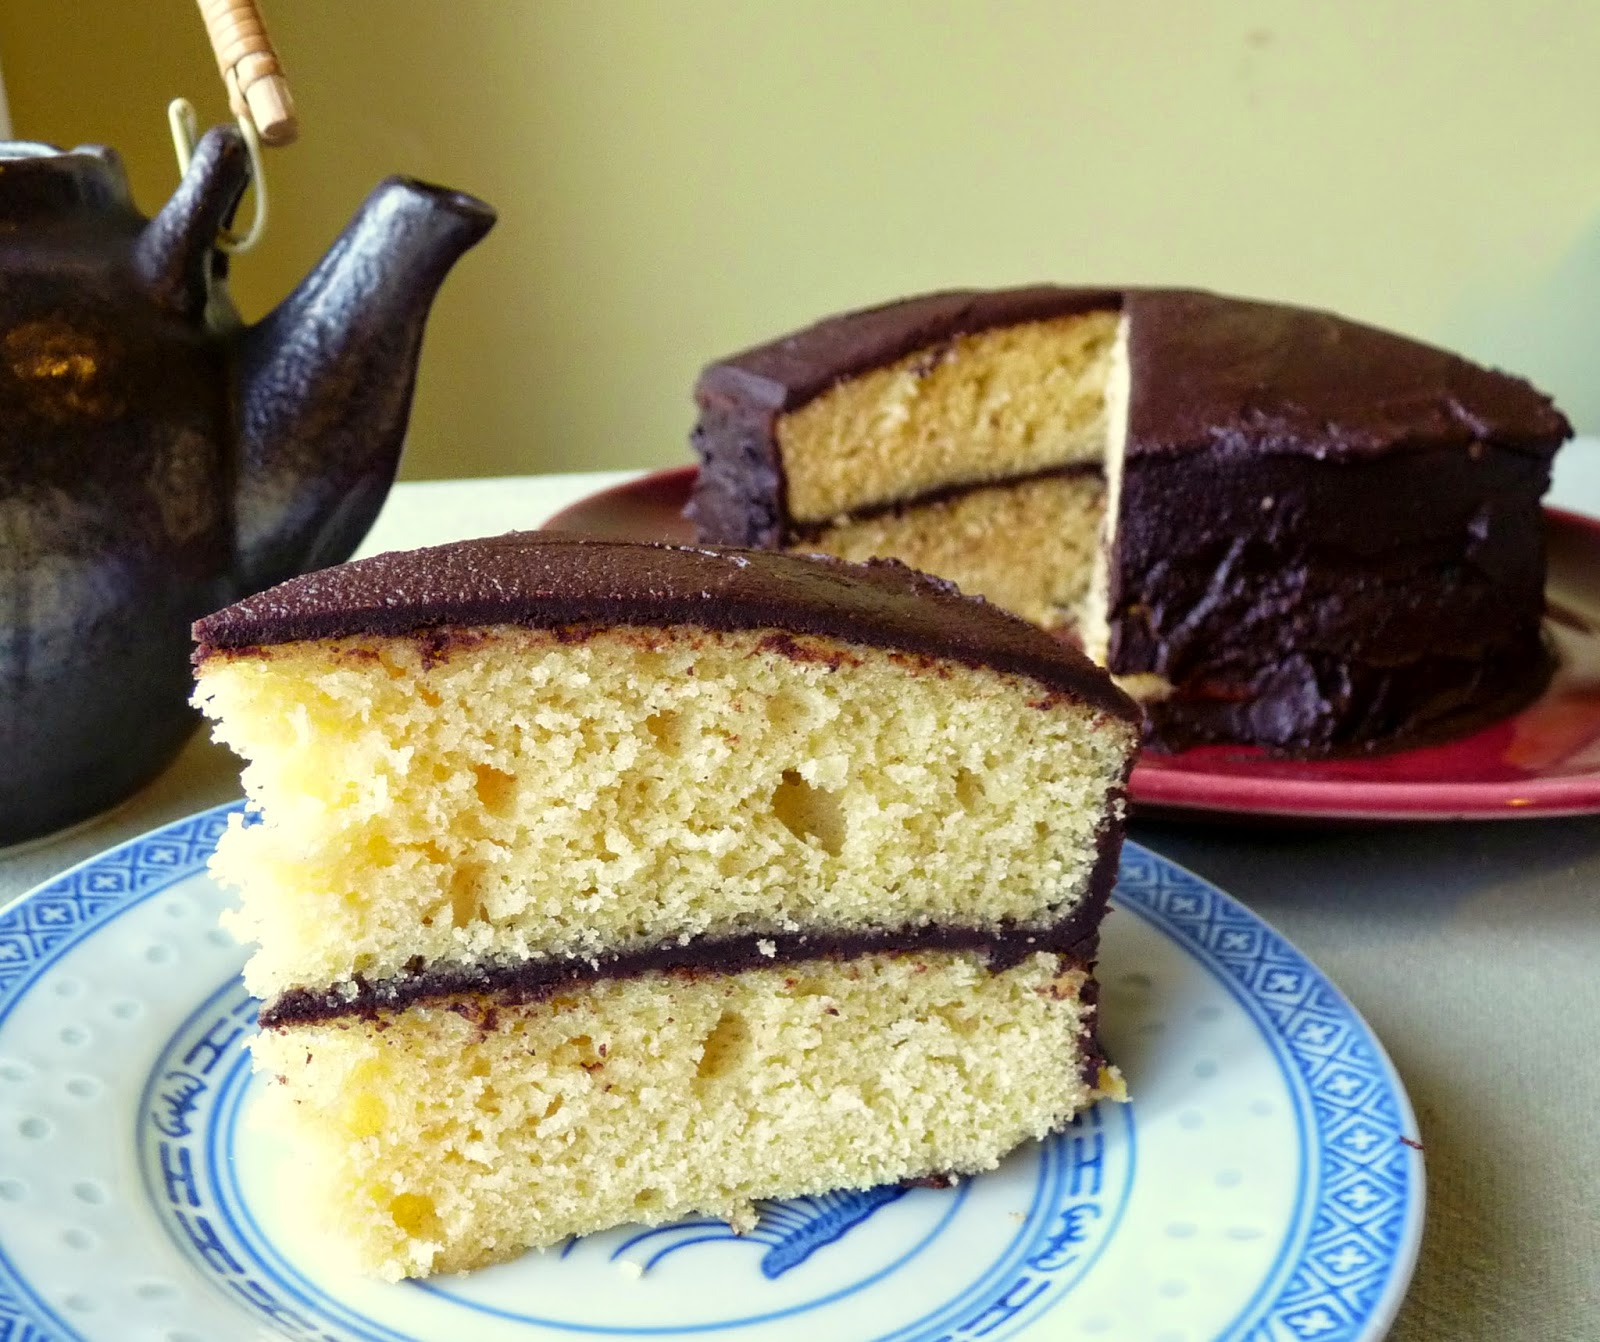 Plain But Good Yellow Cake with Chocolate Glaze